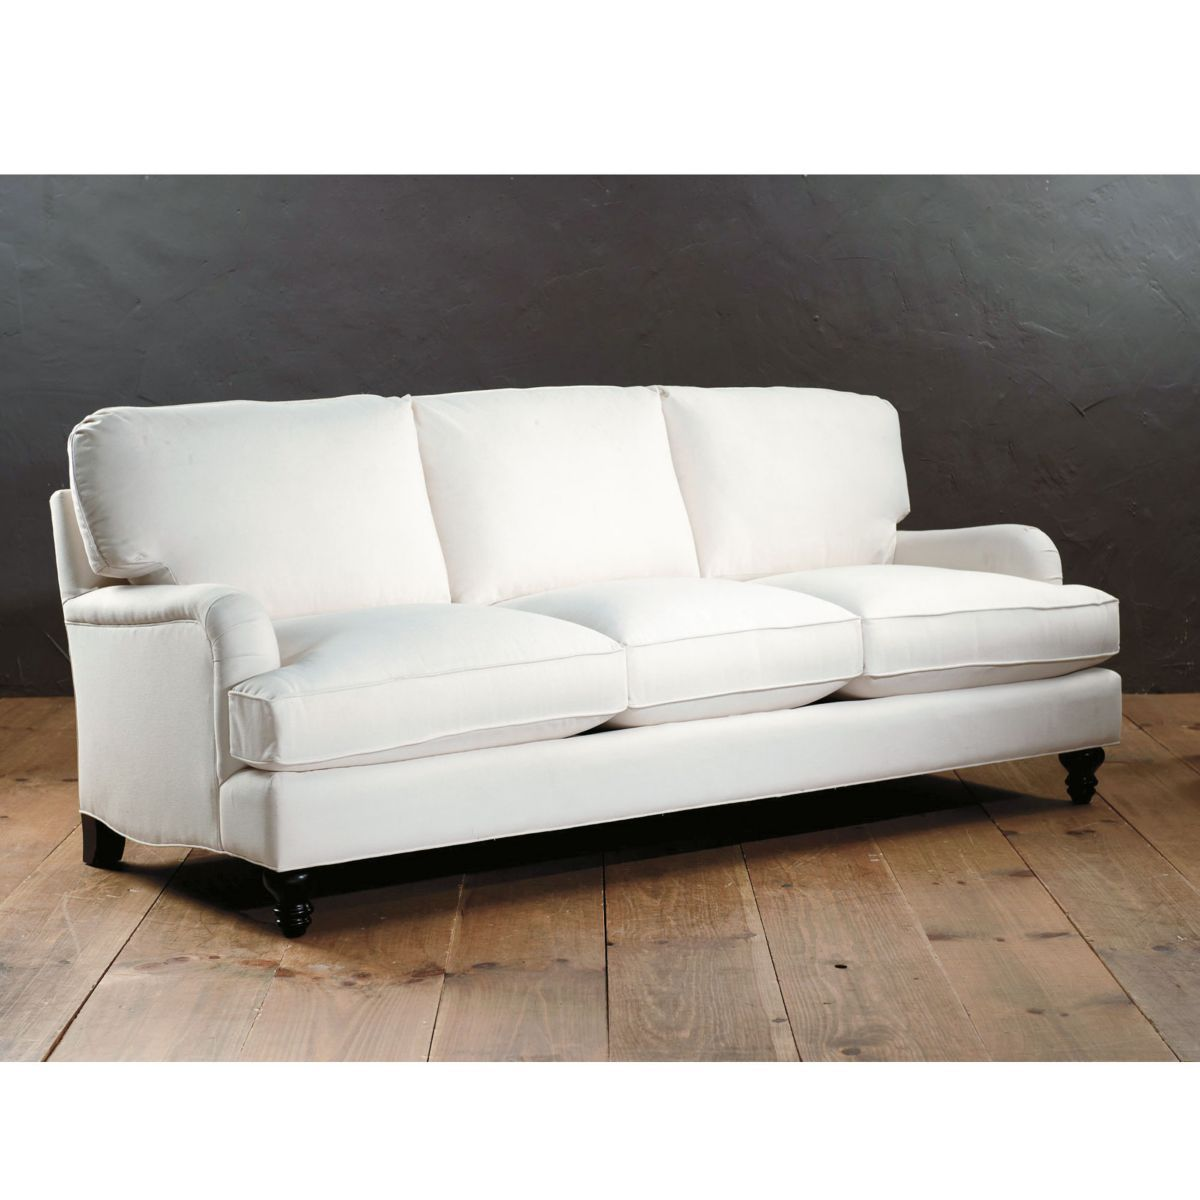 Eton Sofa From Ballard For Living Room Love This Profile And Reviews Are Fab